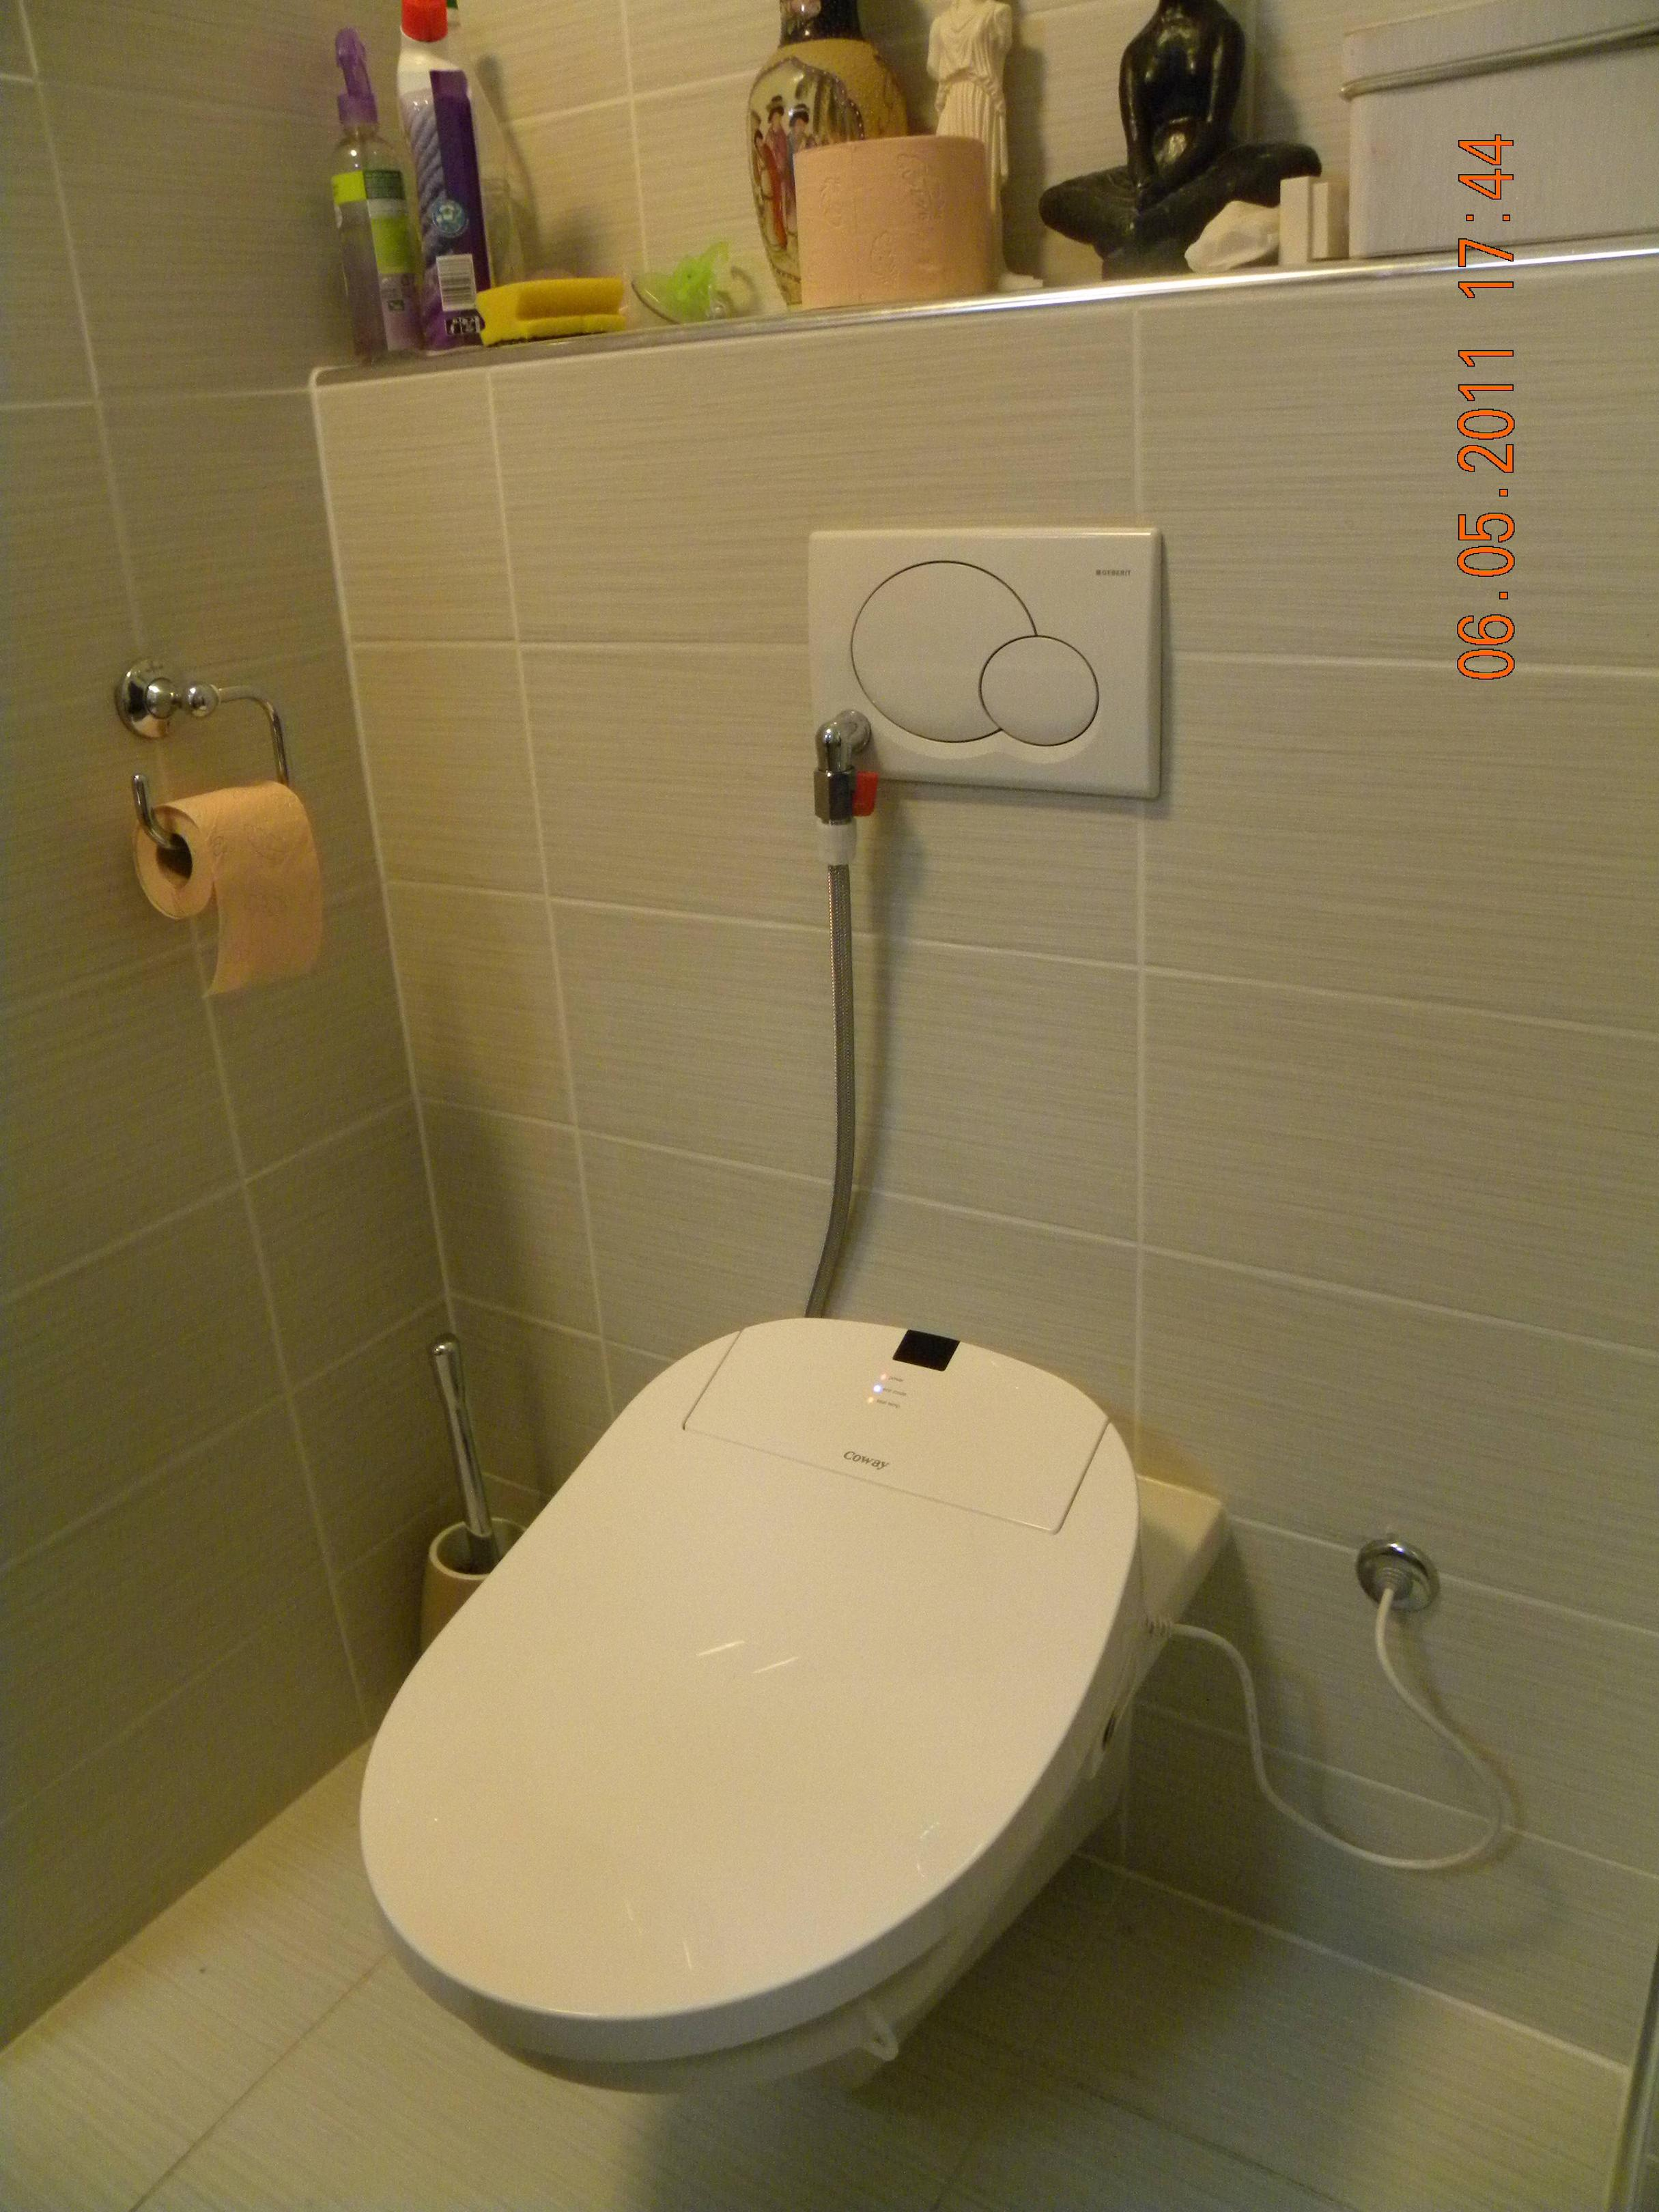 Coway ba13-BE digital toilet bidet seat